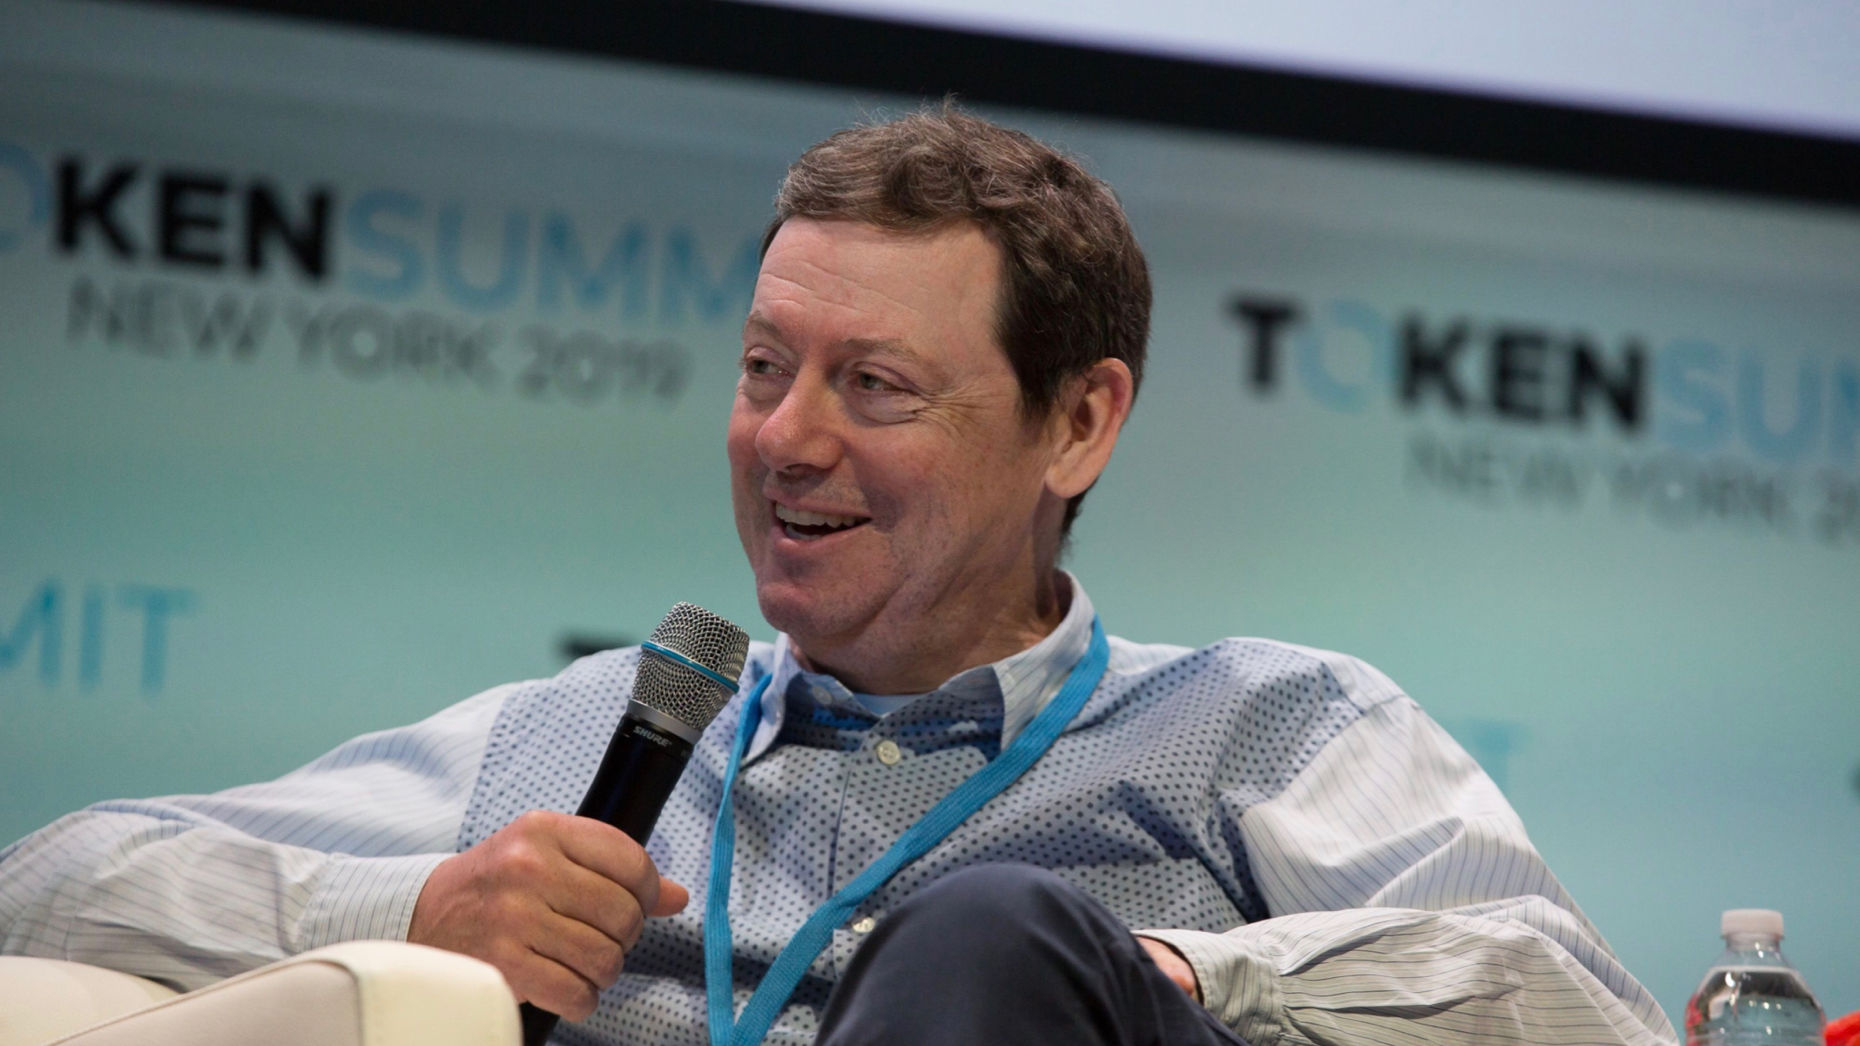 Fred Wilson, co-founder and partner at Union Square Ventures, in May. Photo by Bloomberg